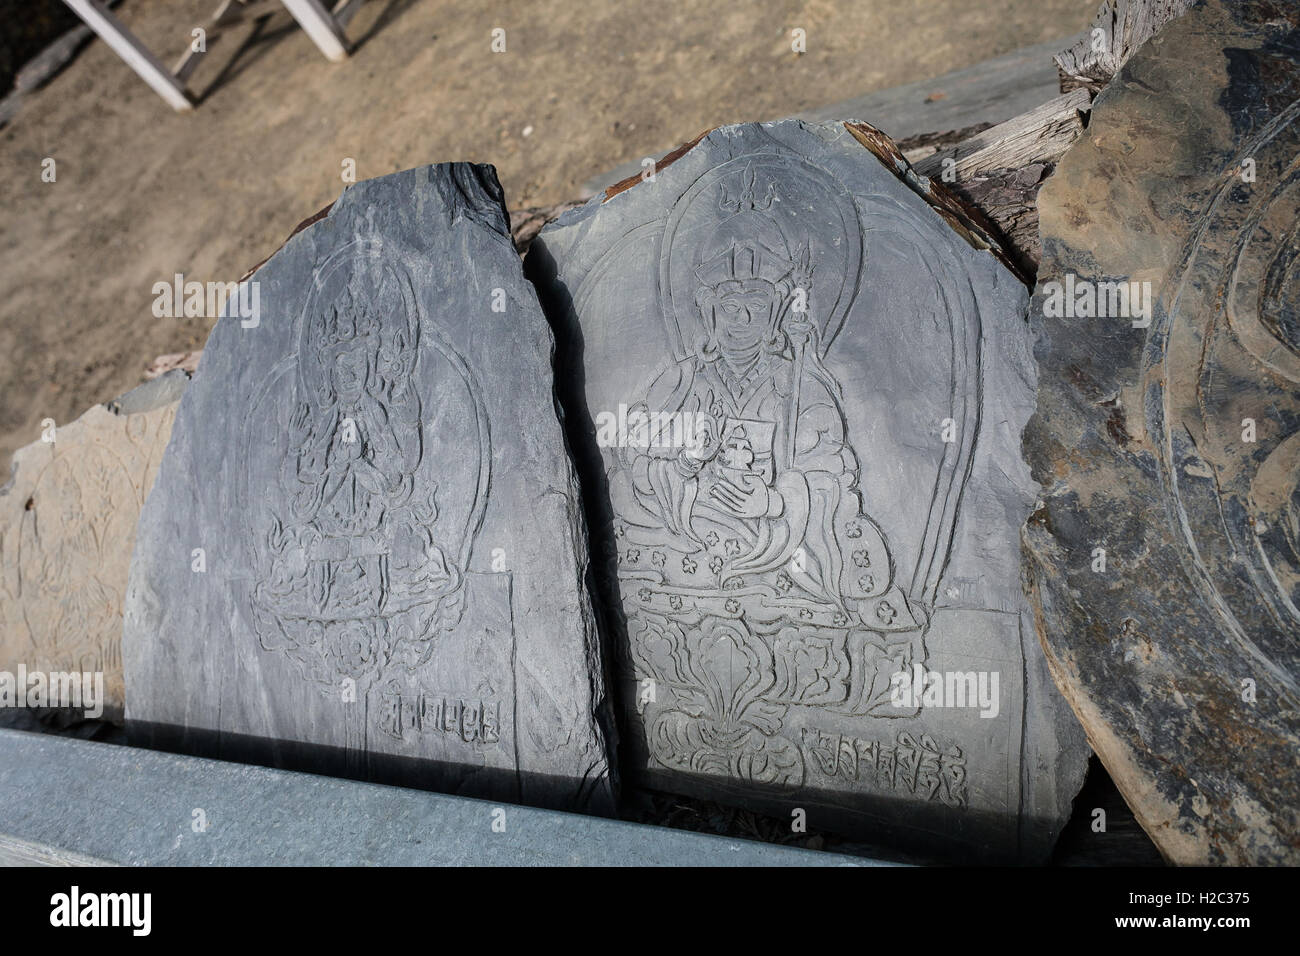 Closeup Photo Autentic Draw Stone Budda Symbols and Mantras. Horizontal. Nepal Travel Trakking Stock Photo